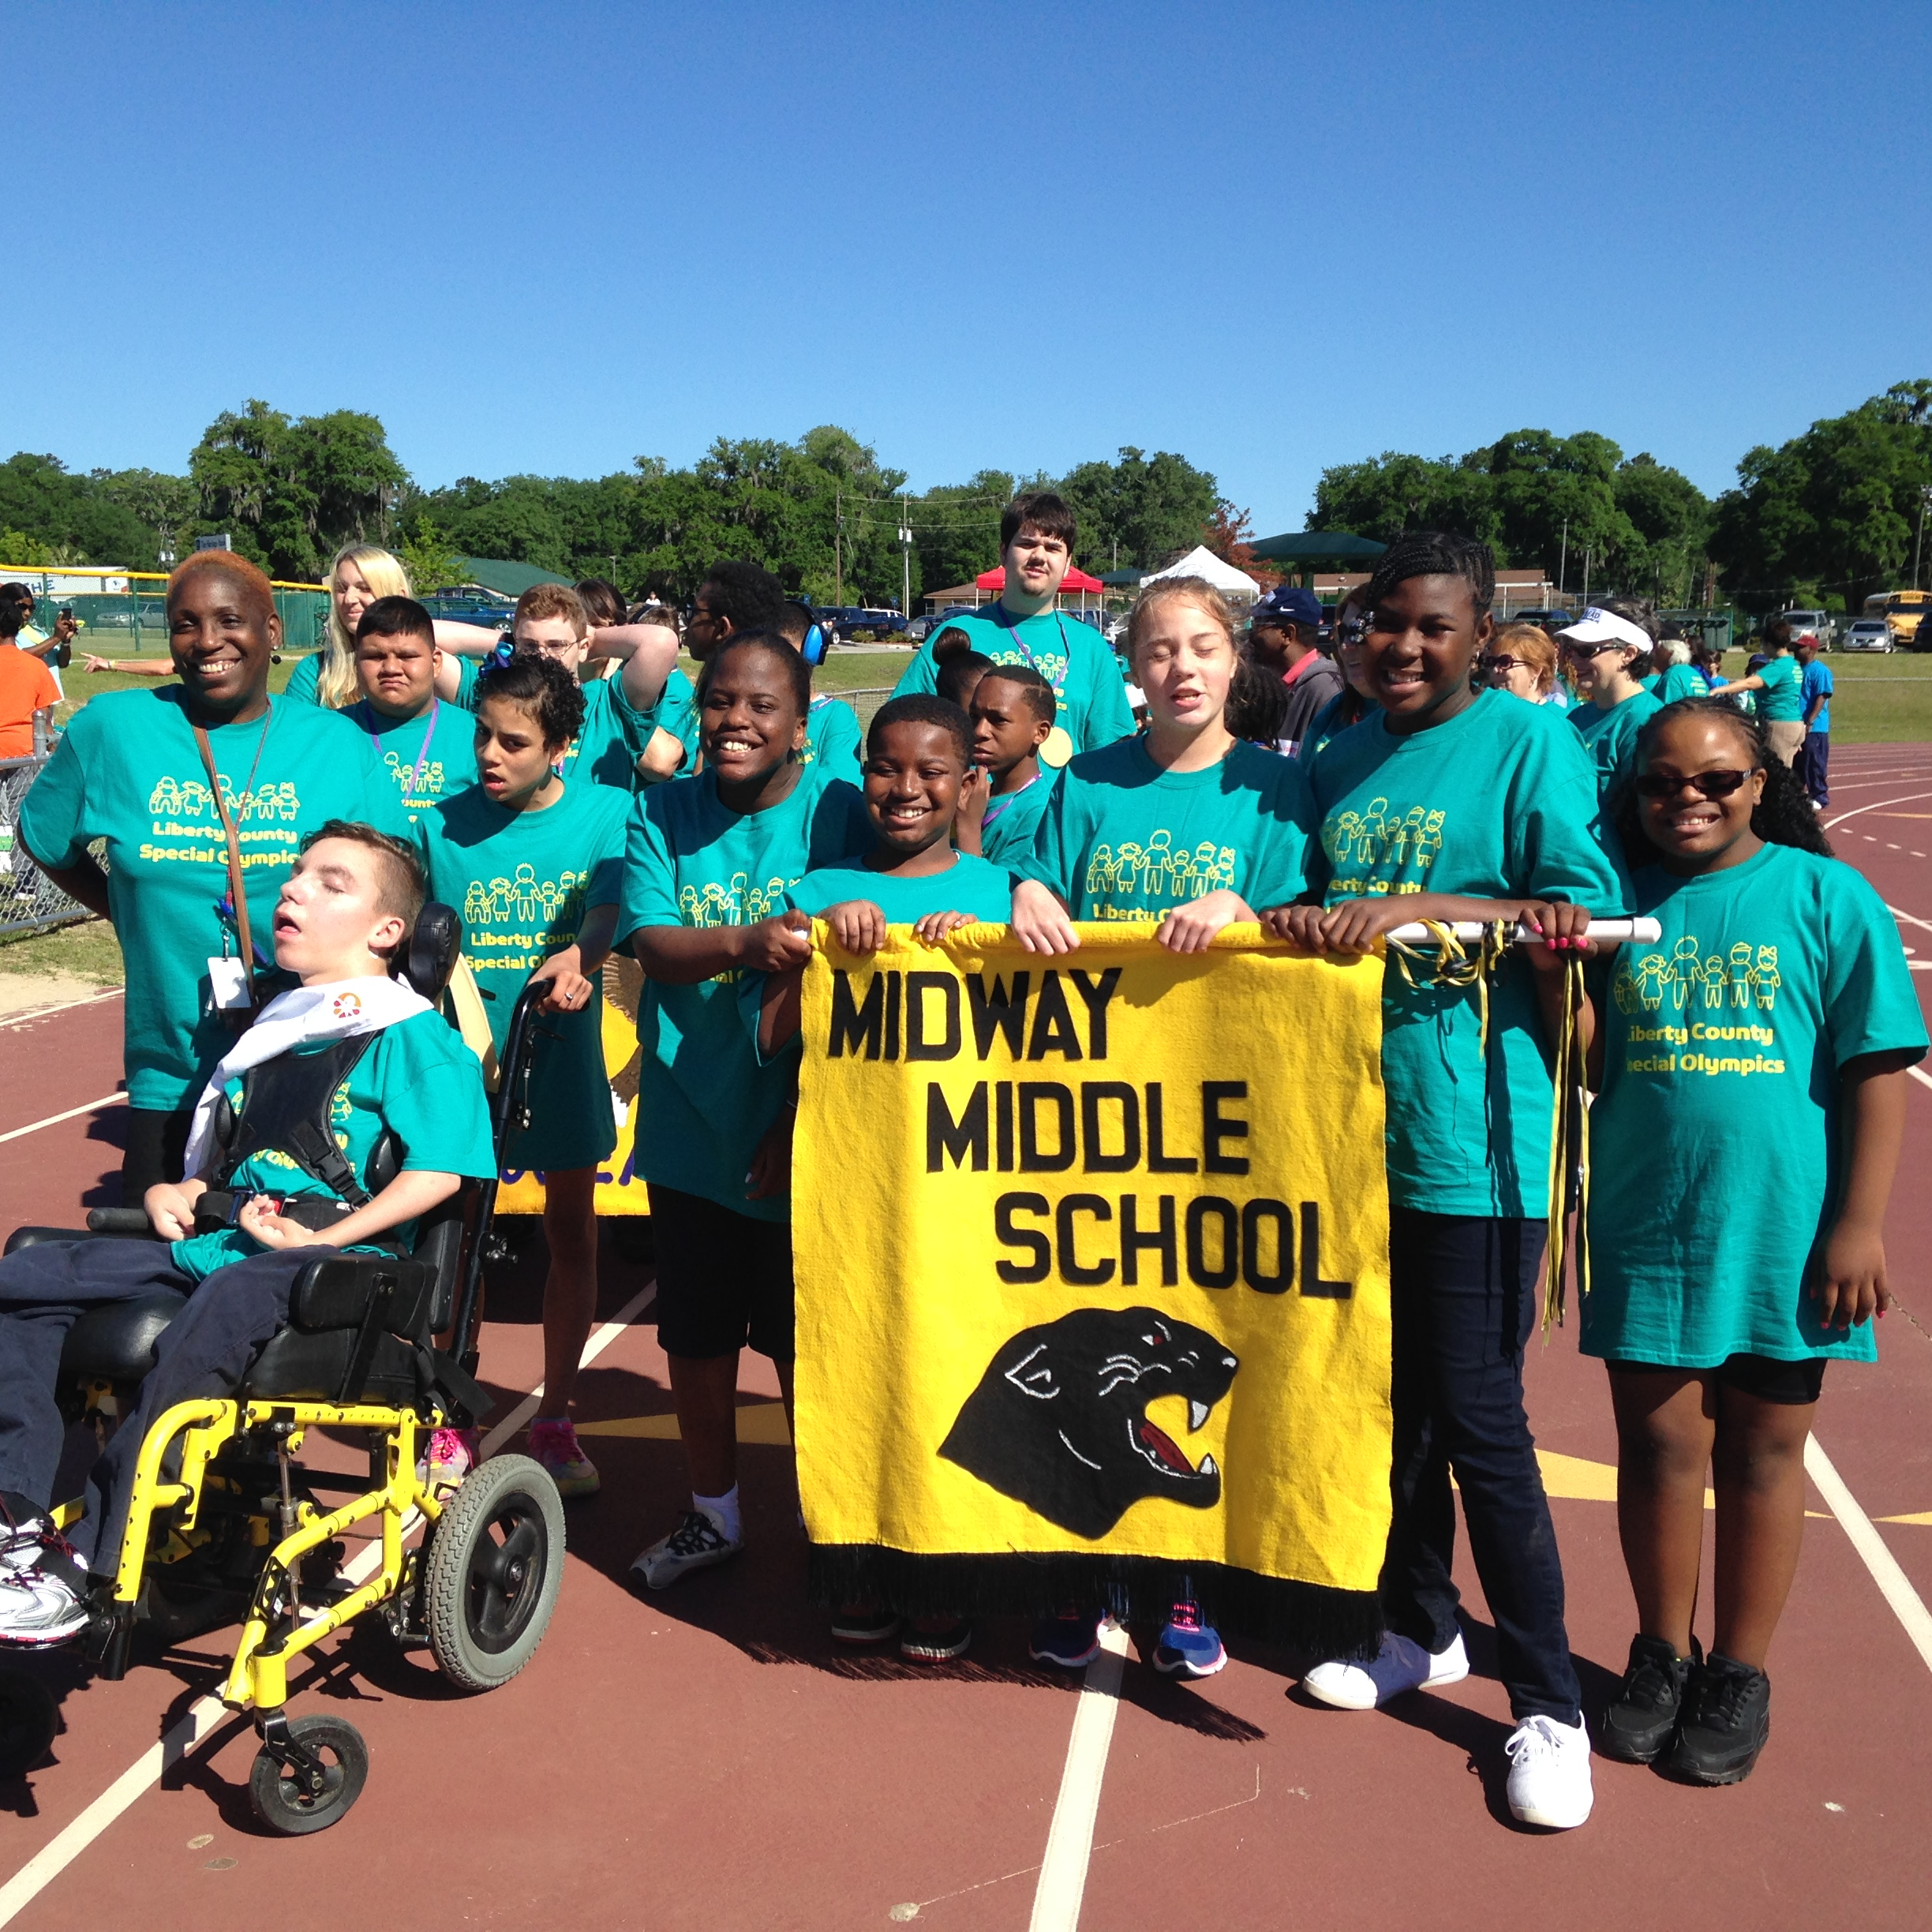 Custom T-Shirts for Midway Middle School Athletes - Shirt Design Ideas